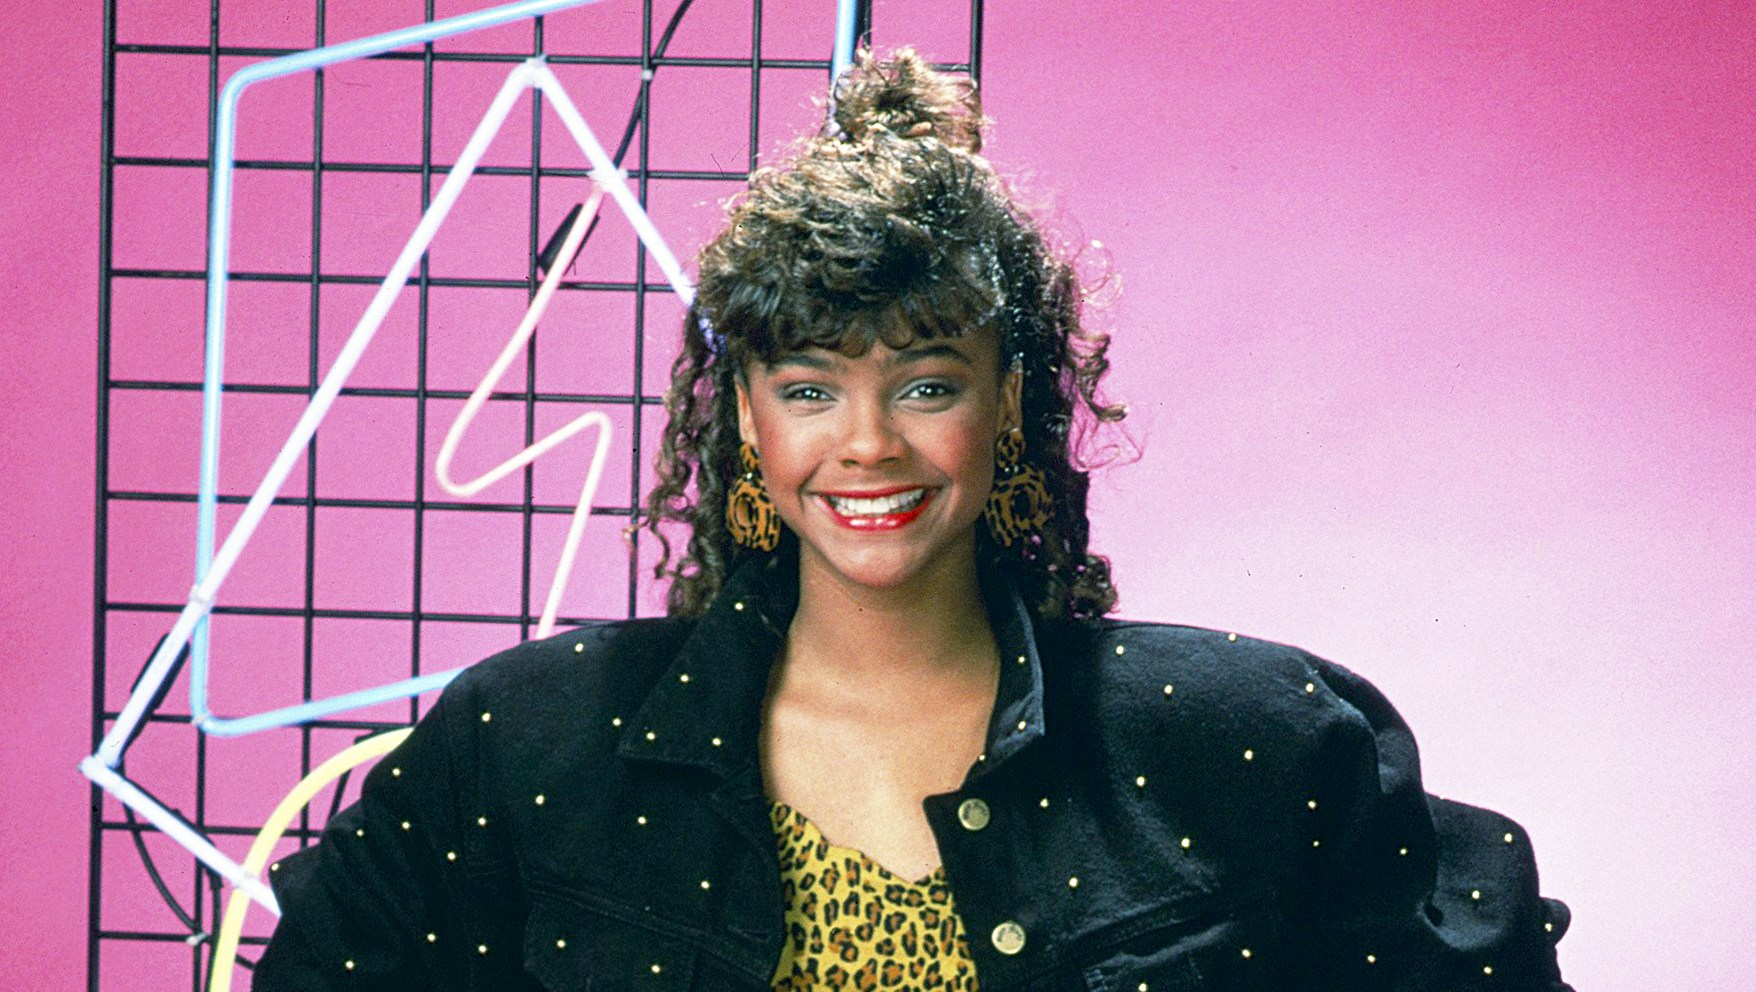 Lark Voorhies as Lisa Turtle on 'Saved By The Bell'